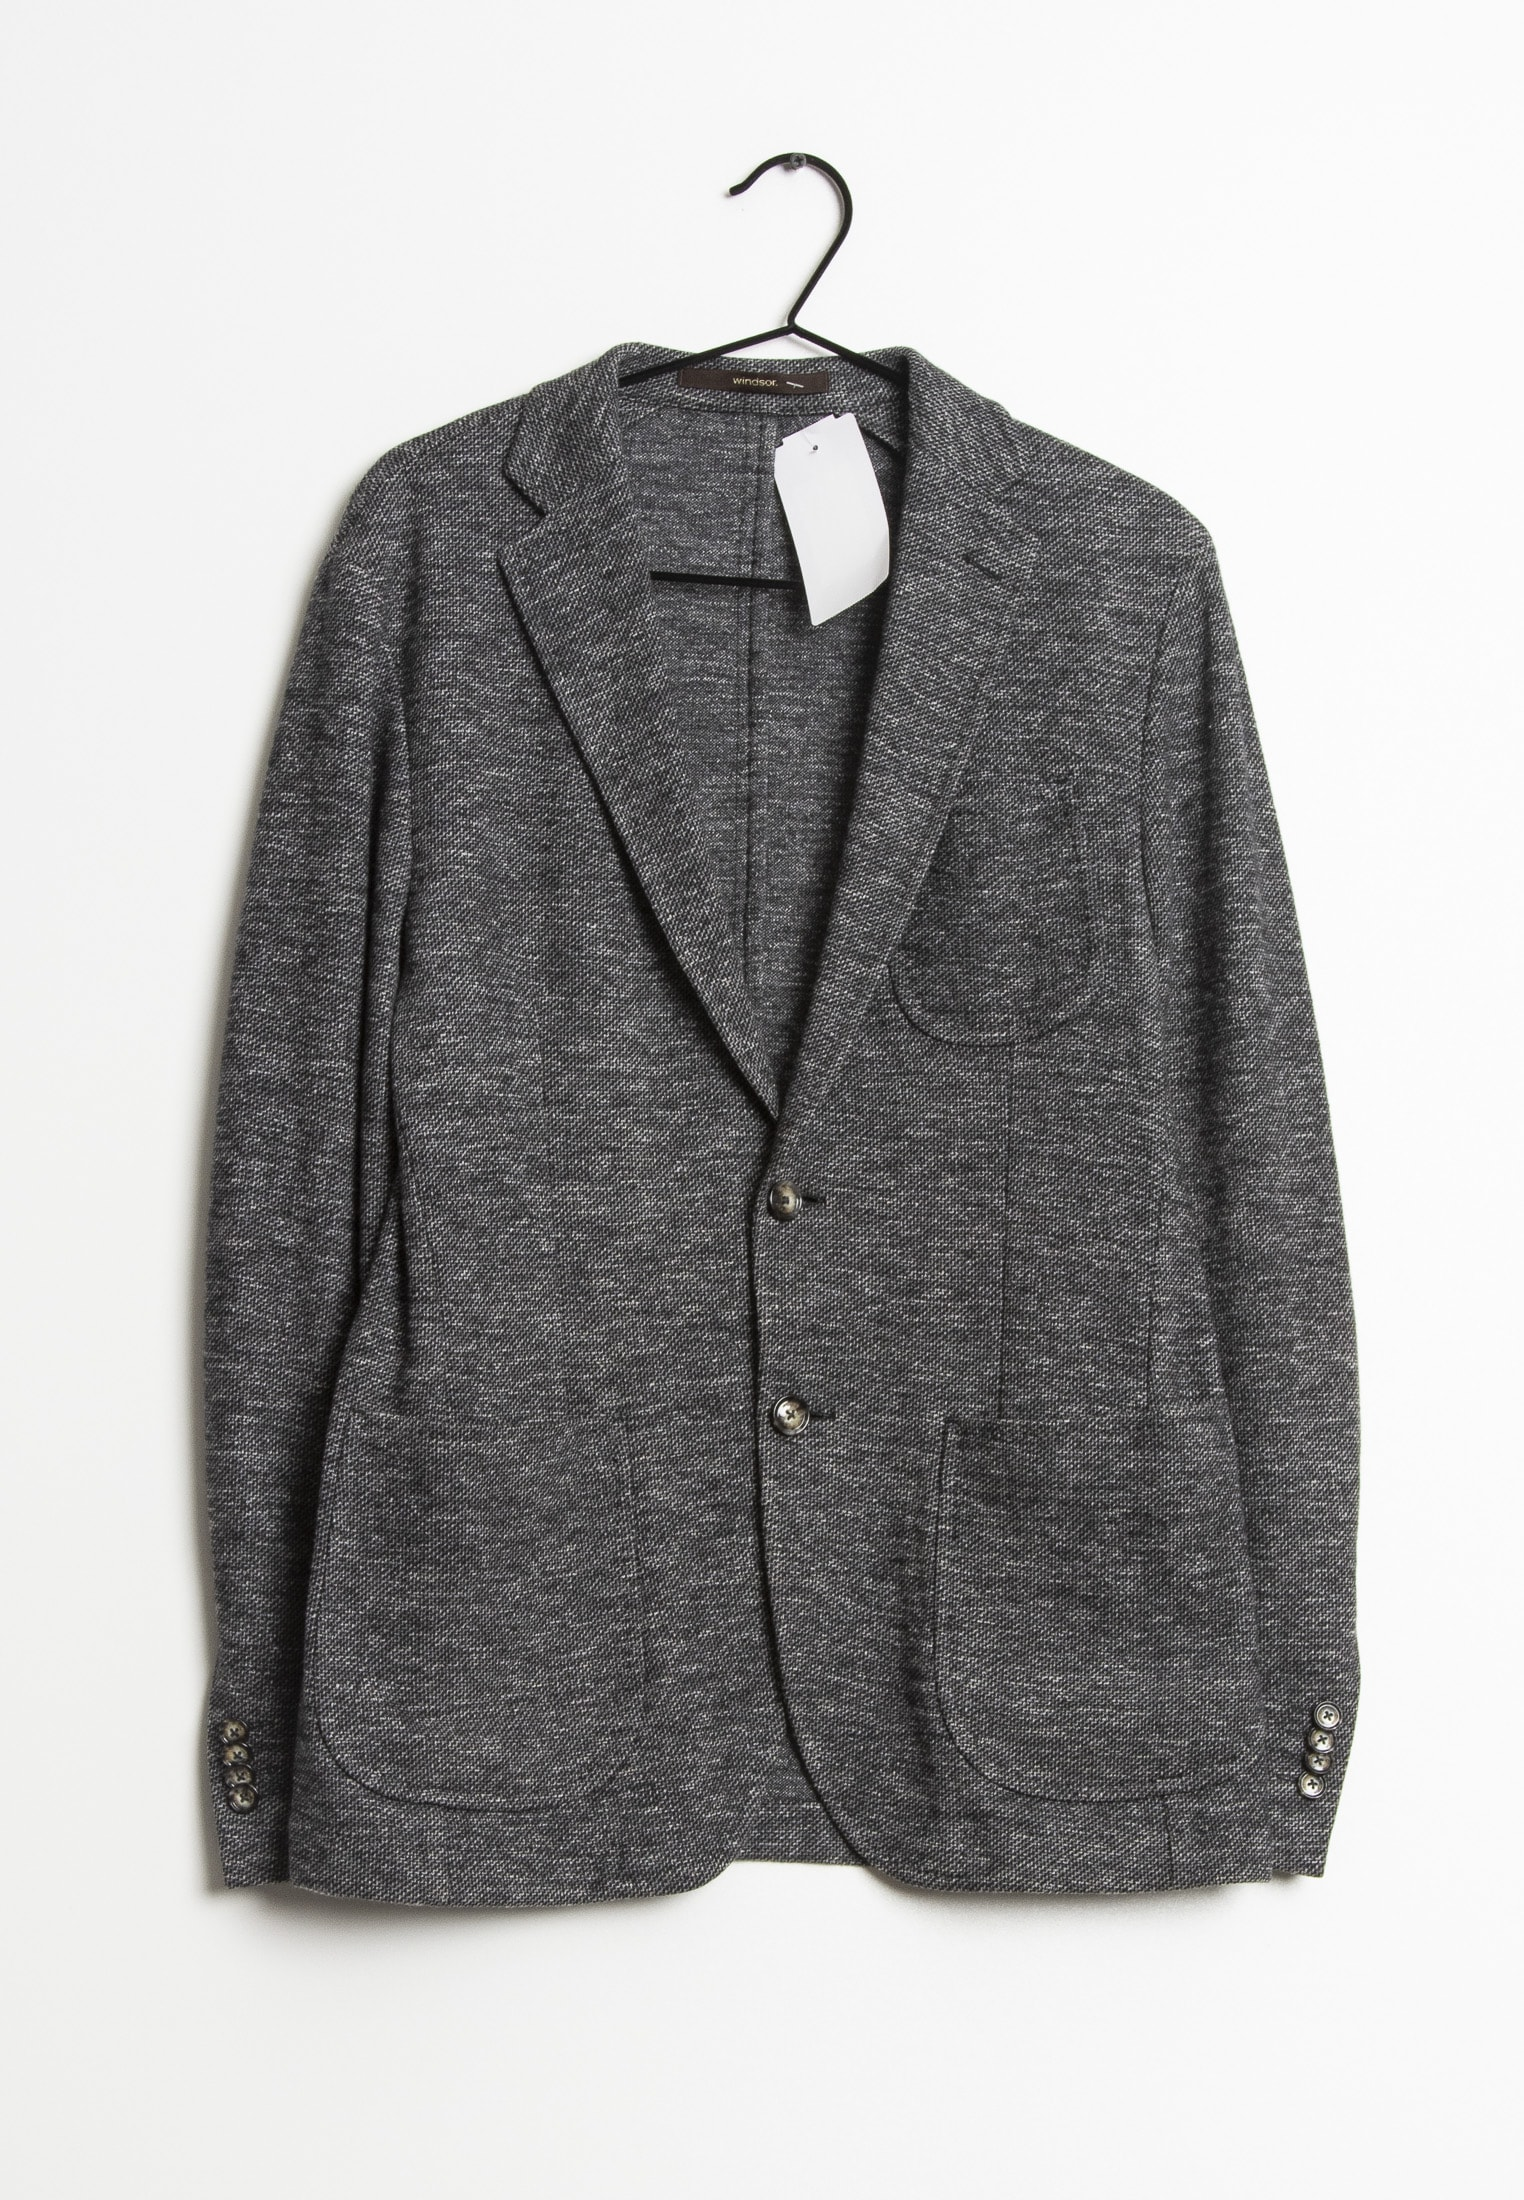 Windsor. blazer, grå, 50